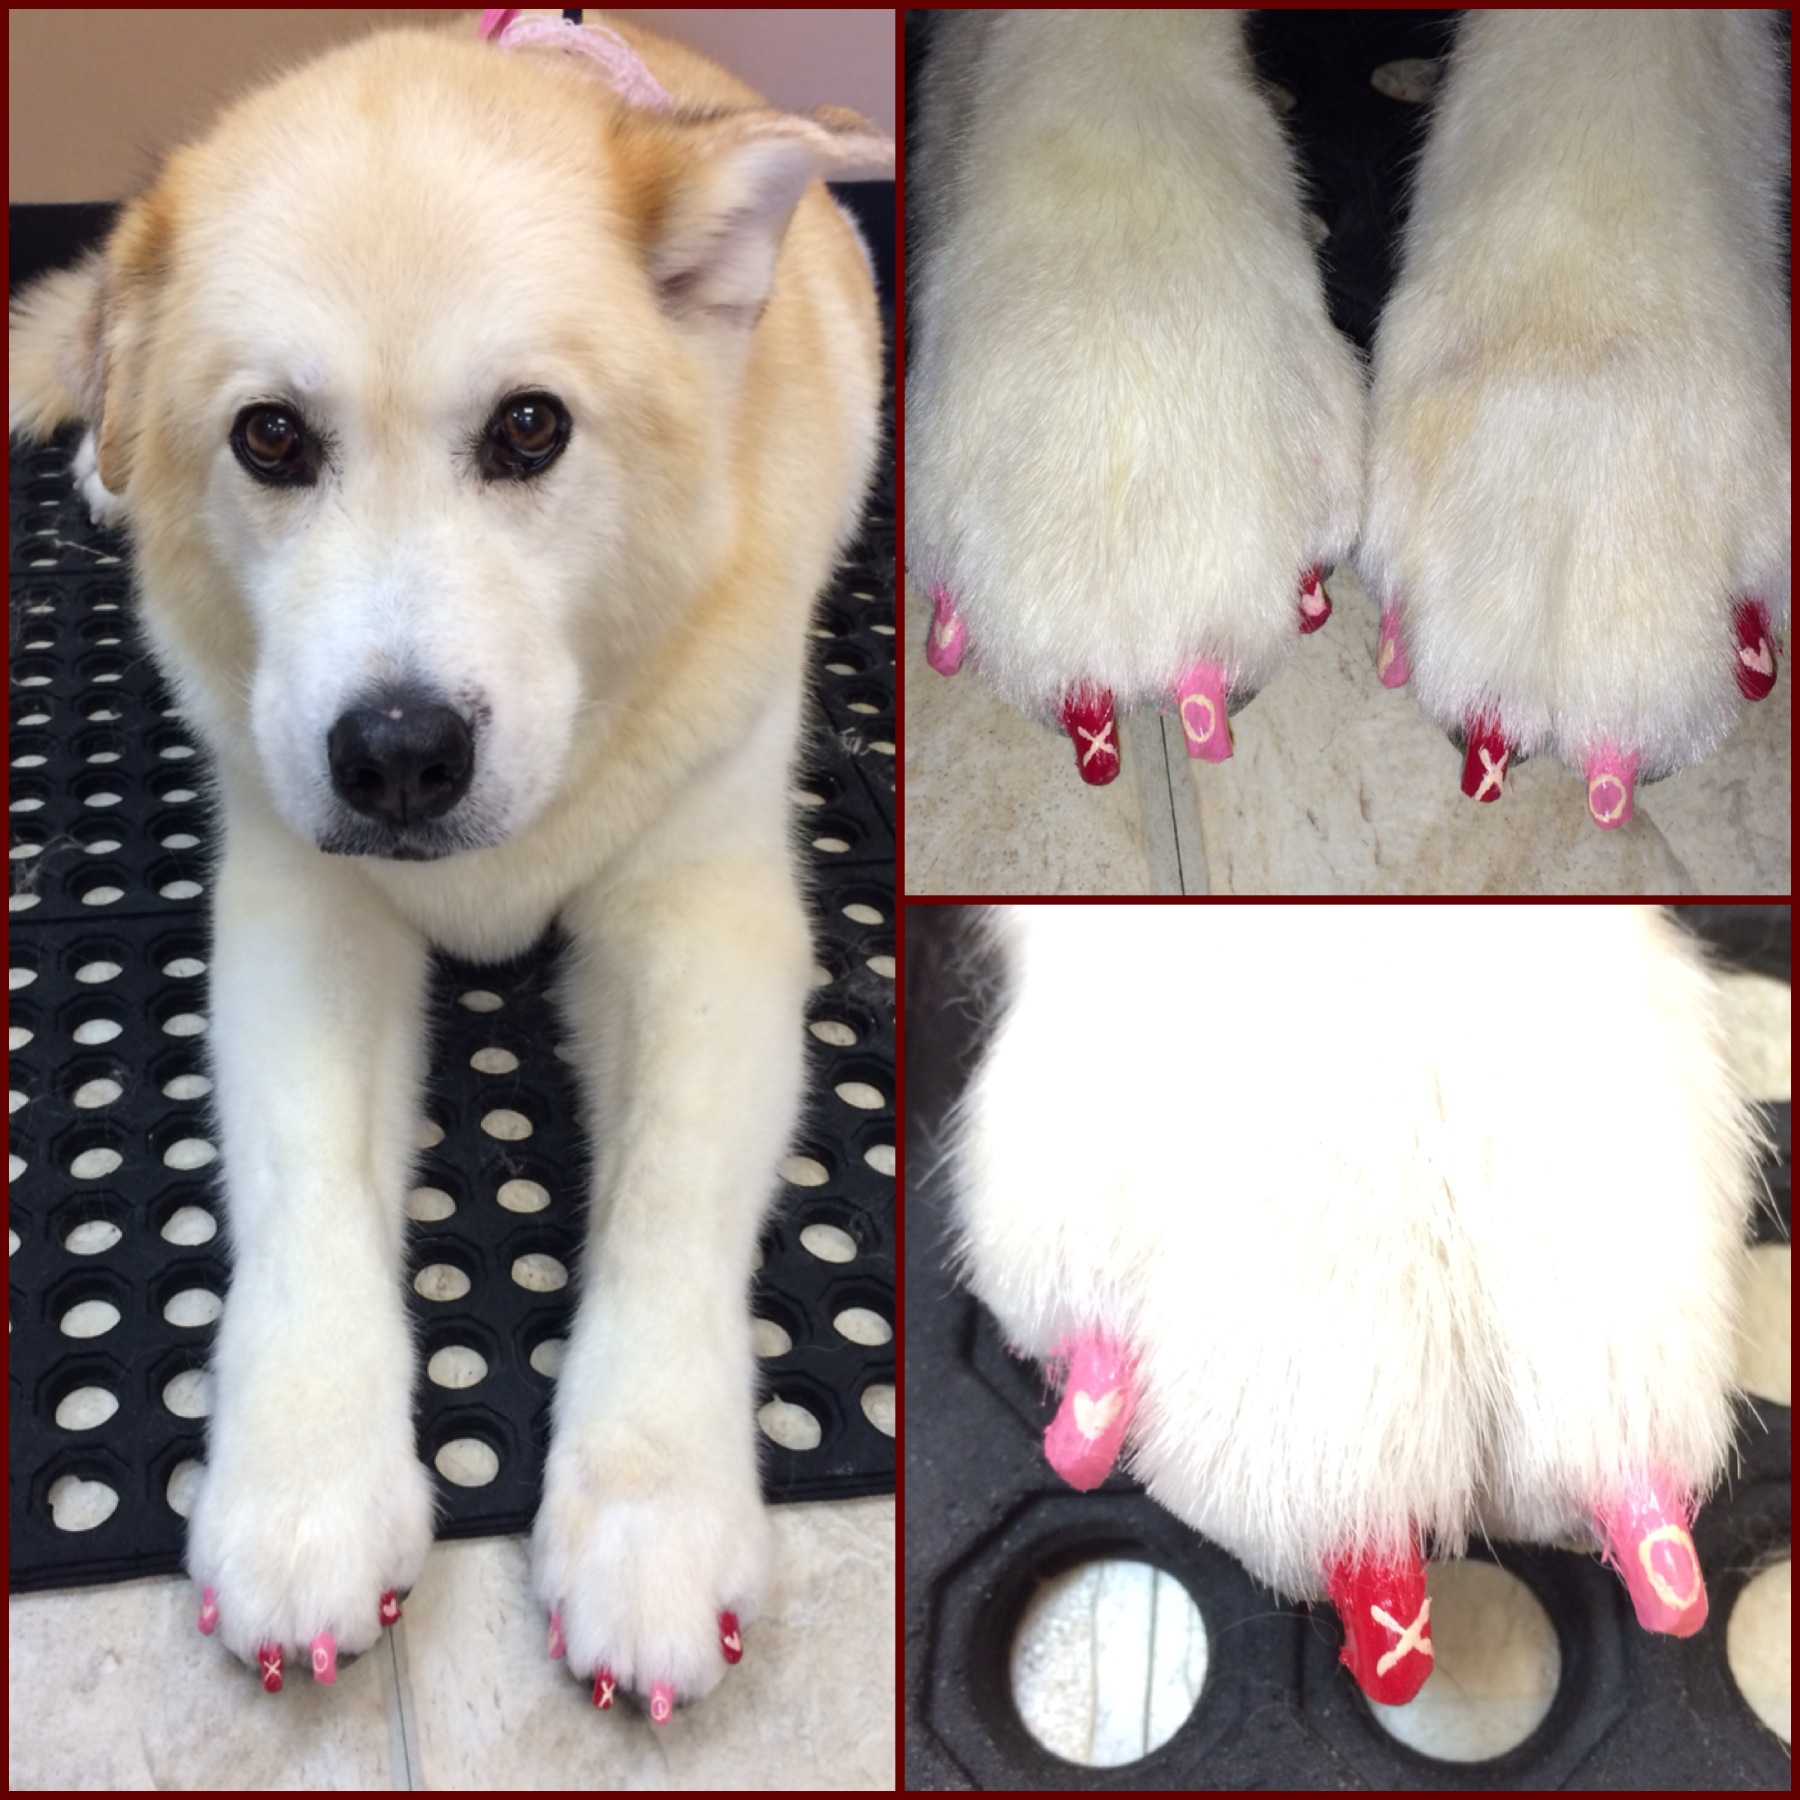 Cassie's Valentine's Day nails!